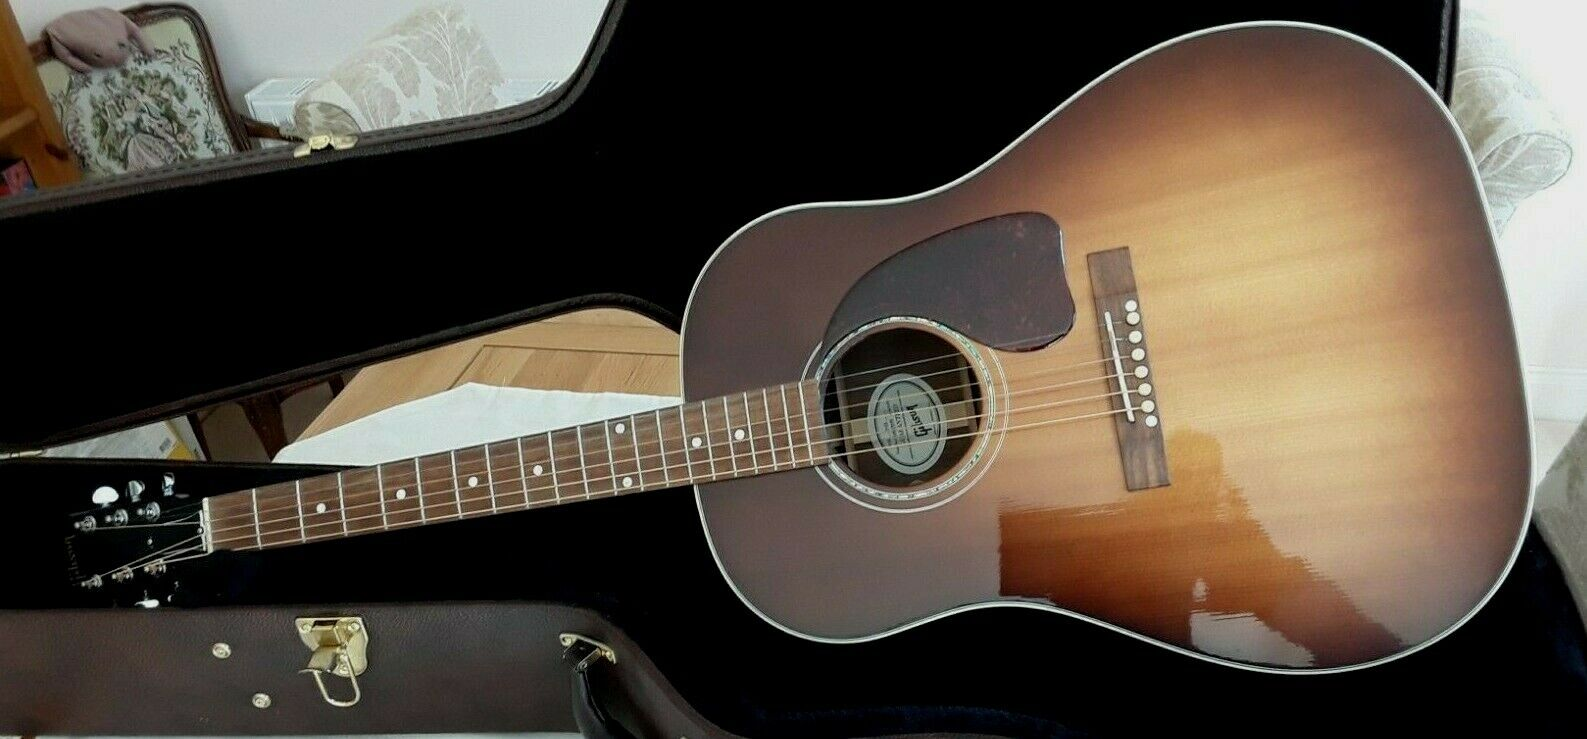 Image 1 - GIBSON J-15 SUPERB CONDITION 2017 WITH HARD CASE